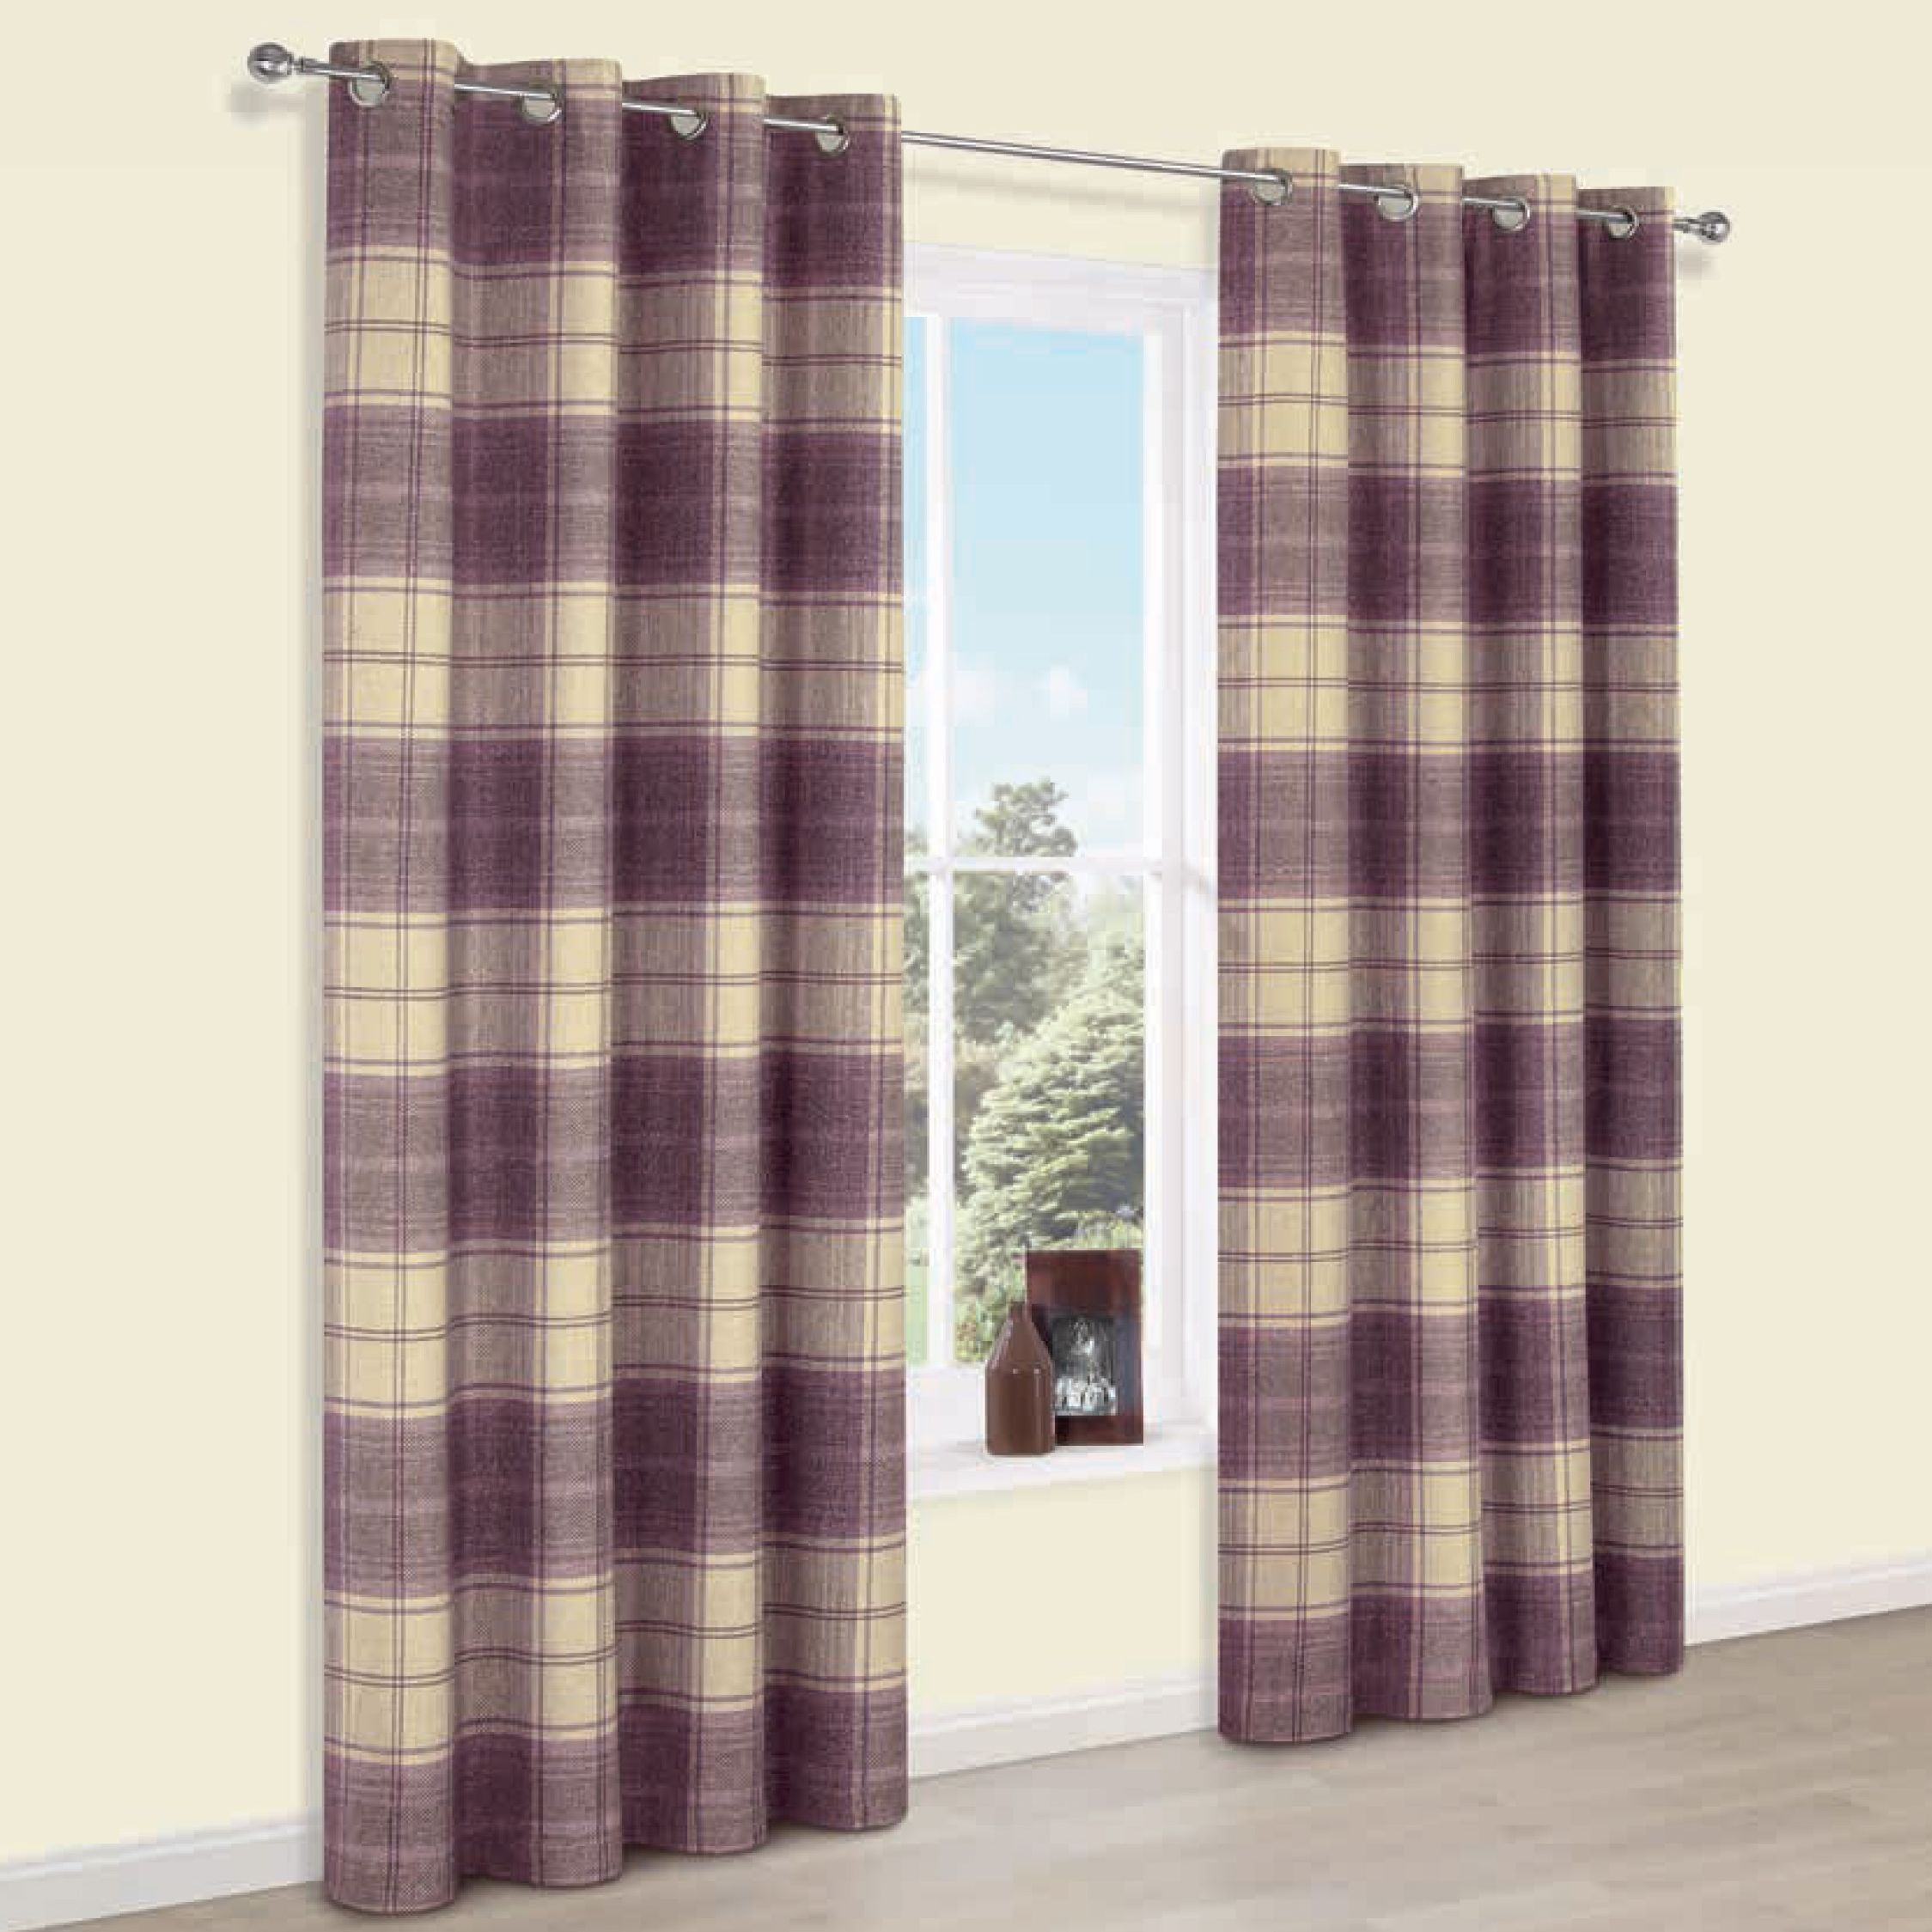 curtains mink brewers palladio boheme made by products lined ready eyelet iliv home